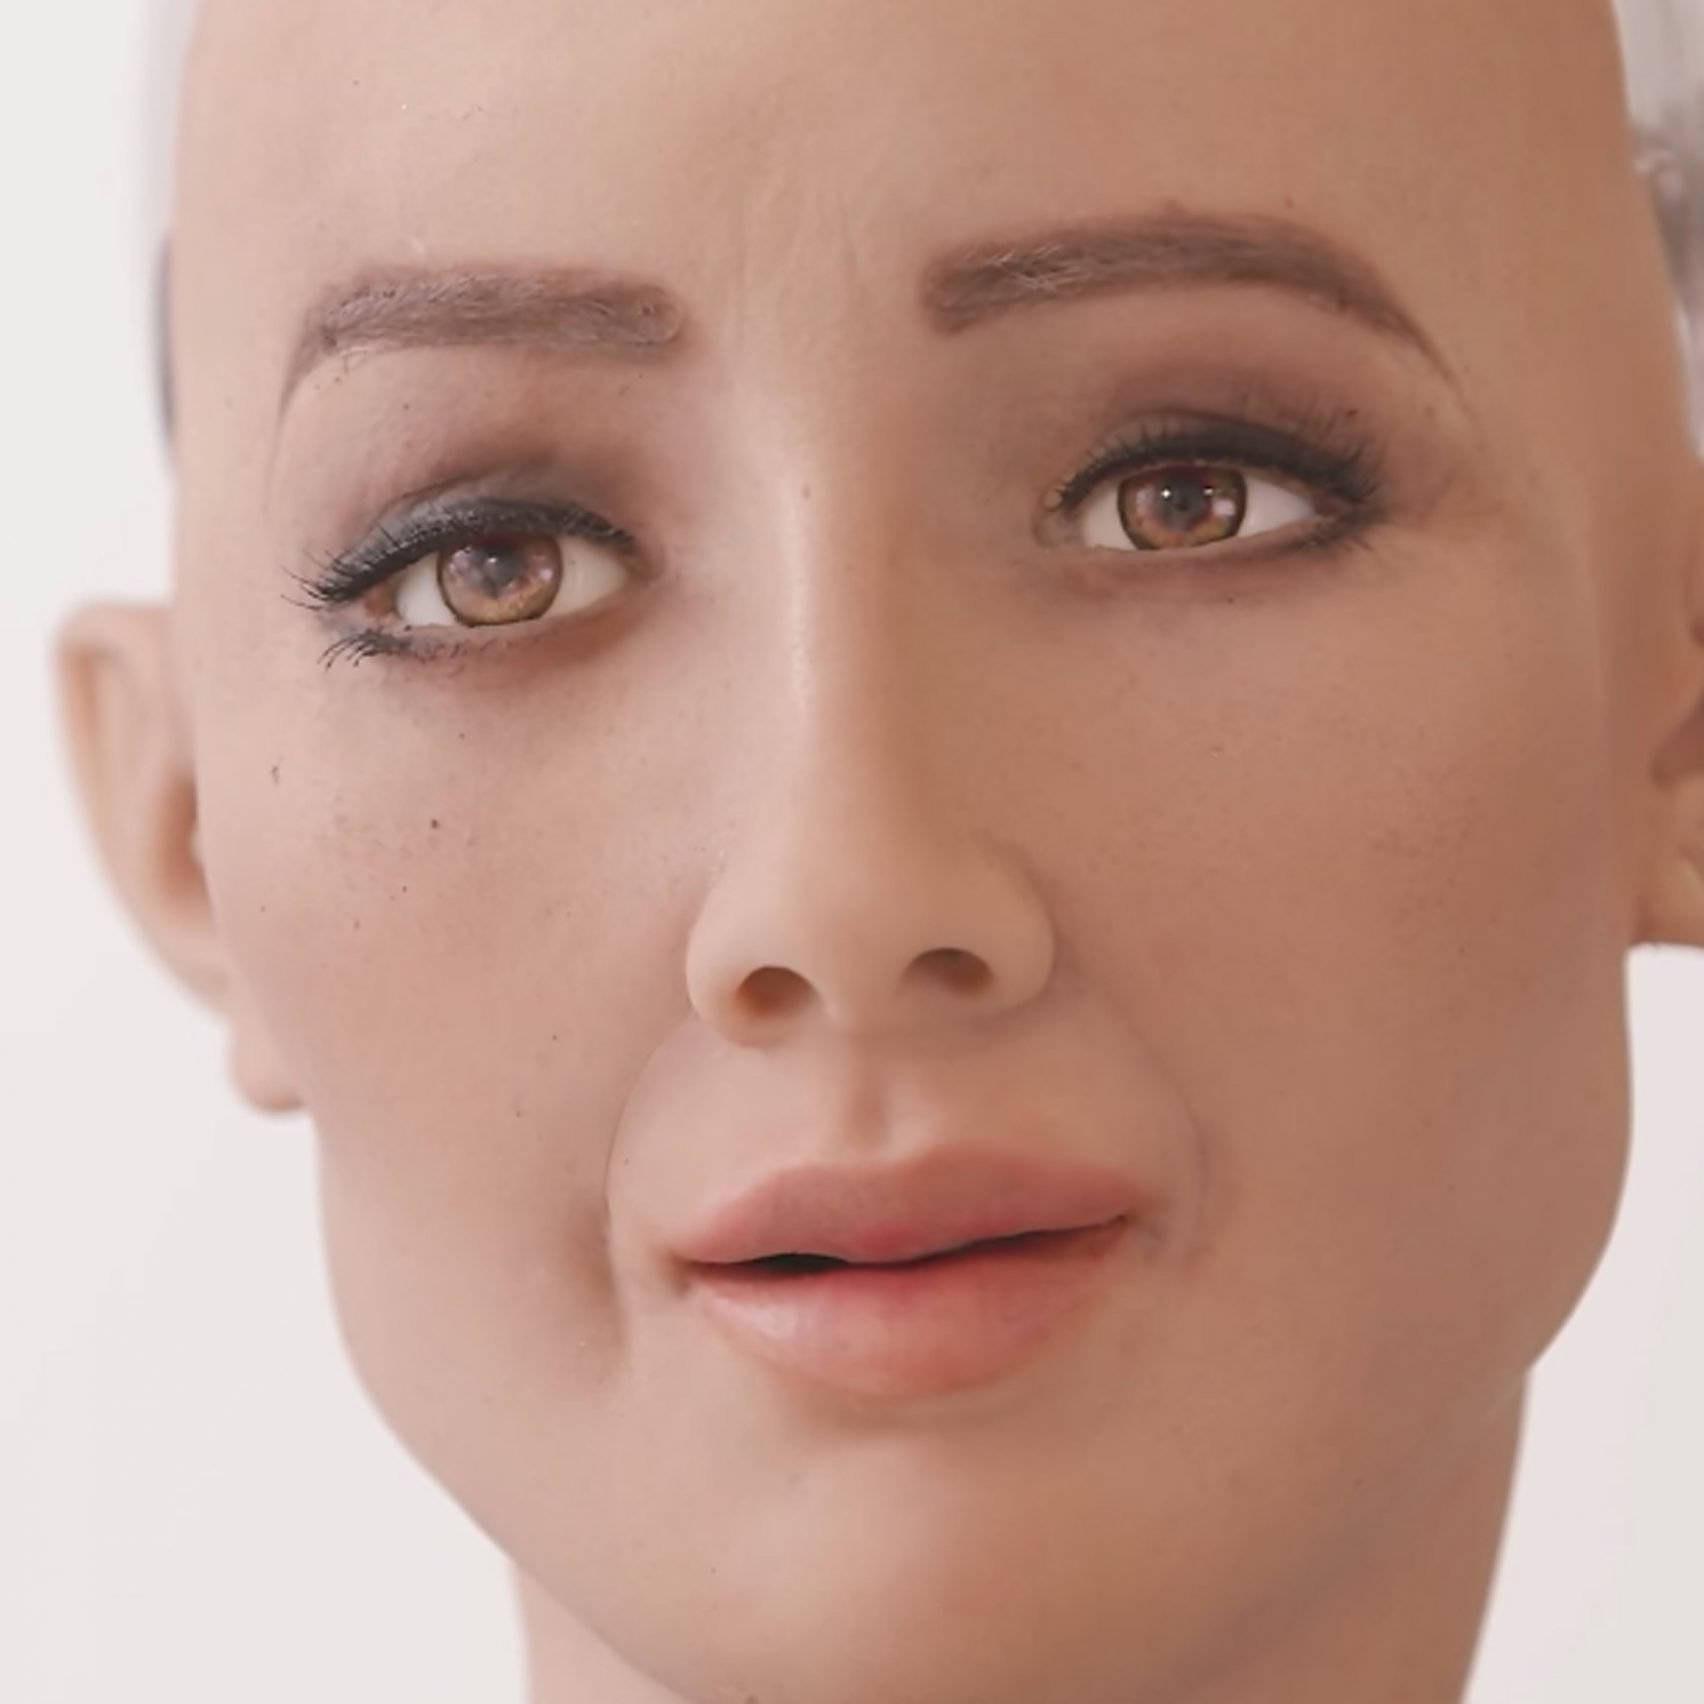 sophia-robot-granted-saudi-arabian-citizenship-technology-news_dezeen_2364_col_0-1704x1704.jpg